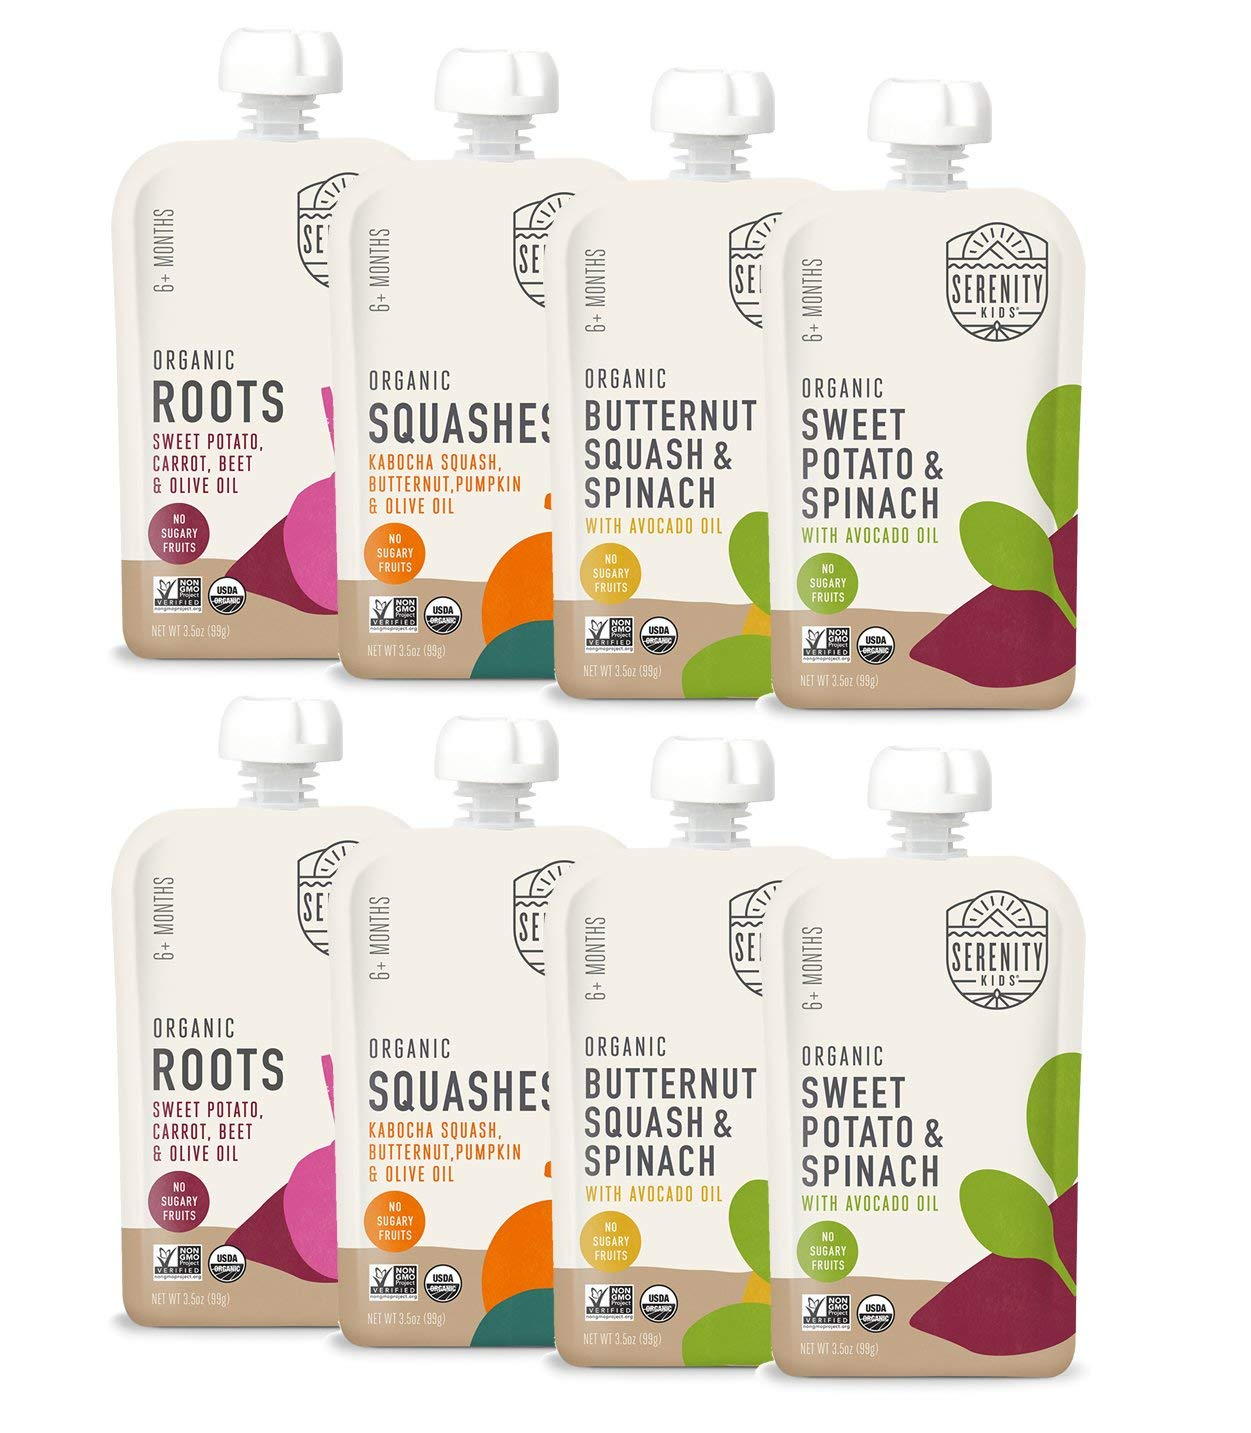 Serenity Kids Baby Food, Organic Savory Veggies Variety Pack with Organic Roots, Sweet Potato, Squashes and Butternut with Spinach, For 6+ Months, 3.5 Ounce Pouch (8 Pack)